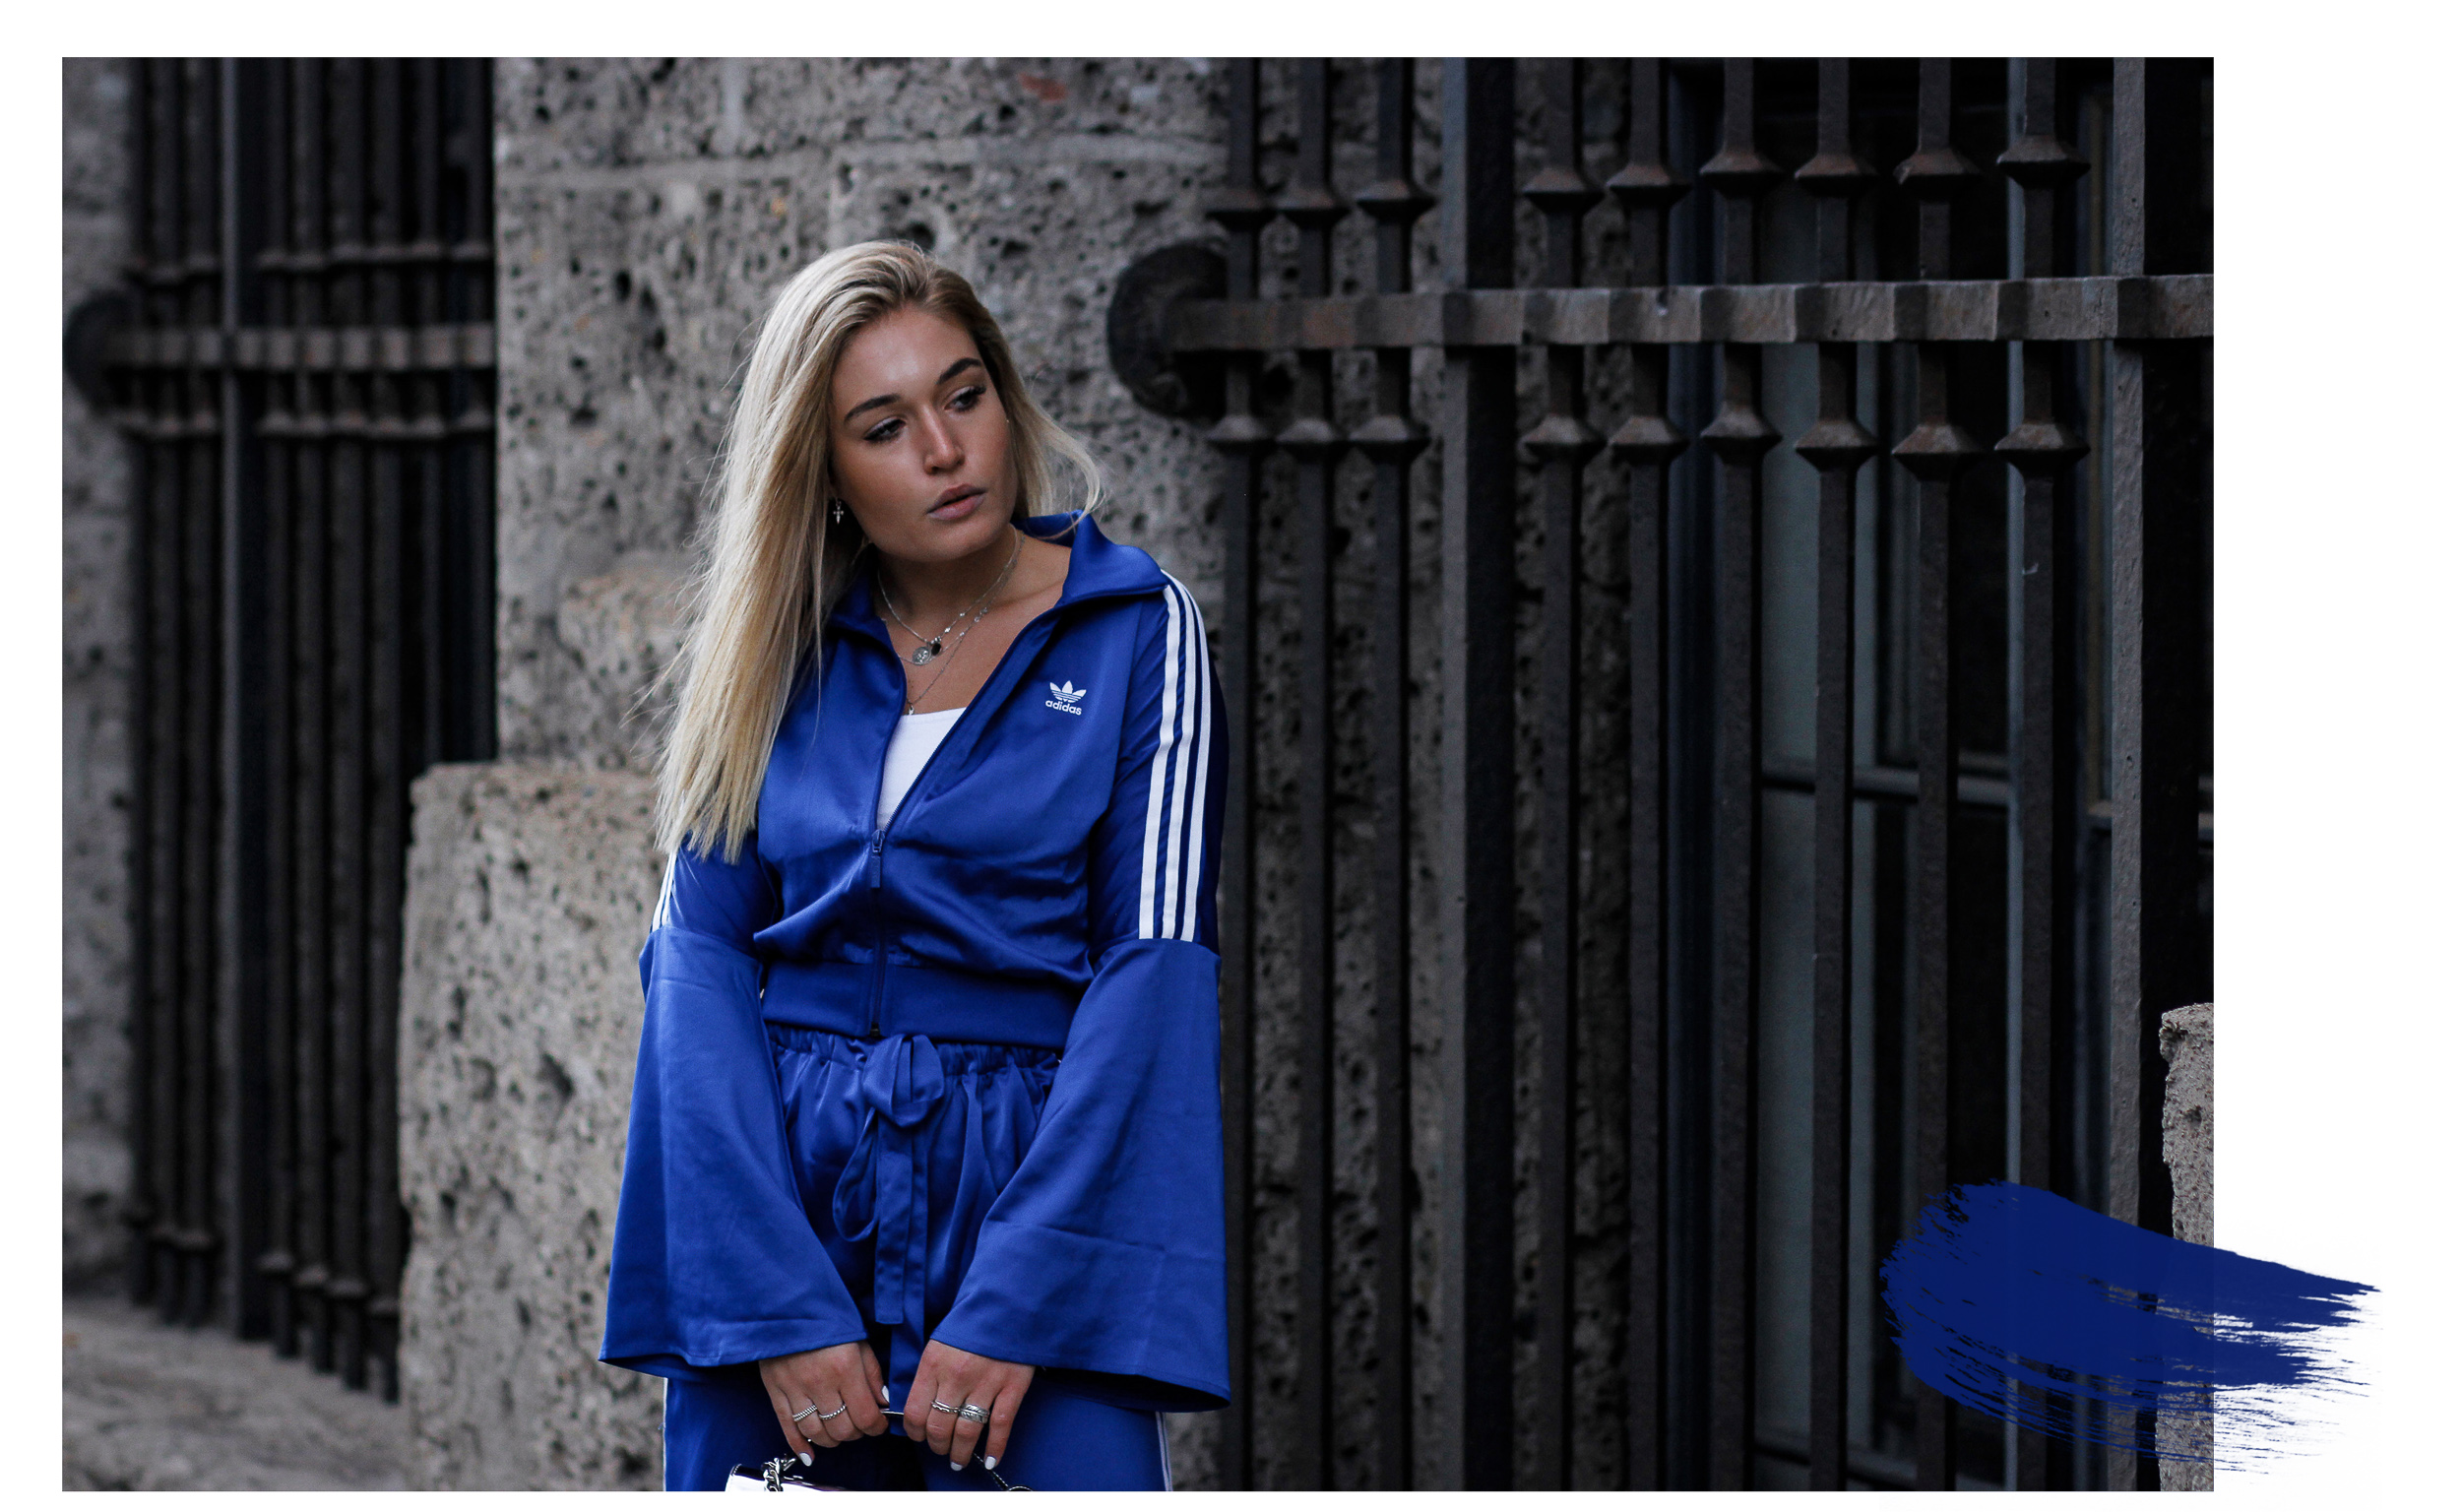 Lauralamode Blog Fashion Adidas Adidas Suit Tracksuit Adidas Originals Look Streetstyle Autumn Herbst Ozweego Calvin Klein Sneakers Berlin Munich2